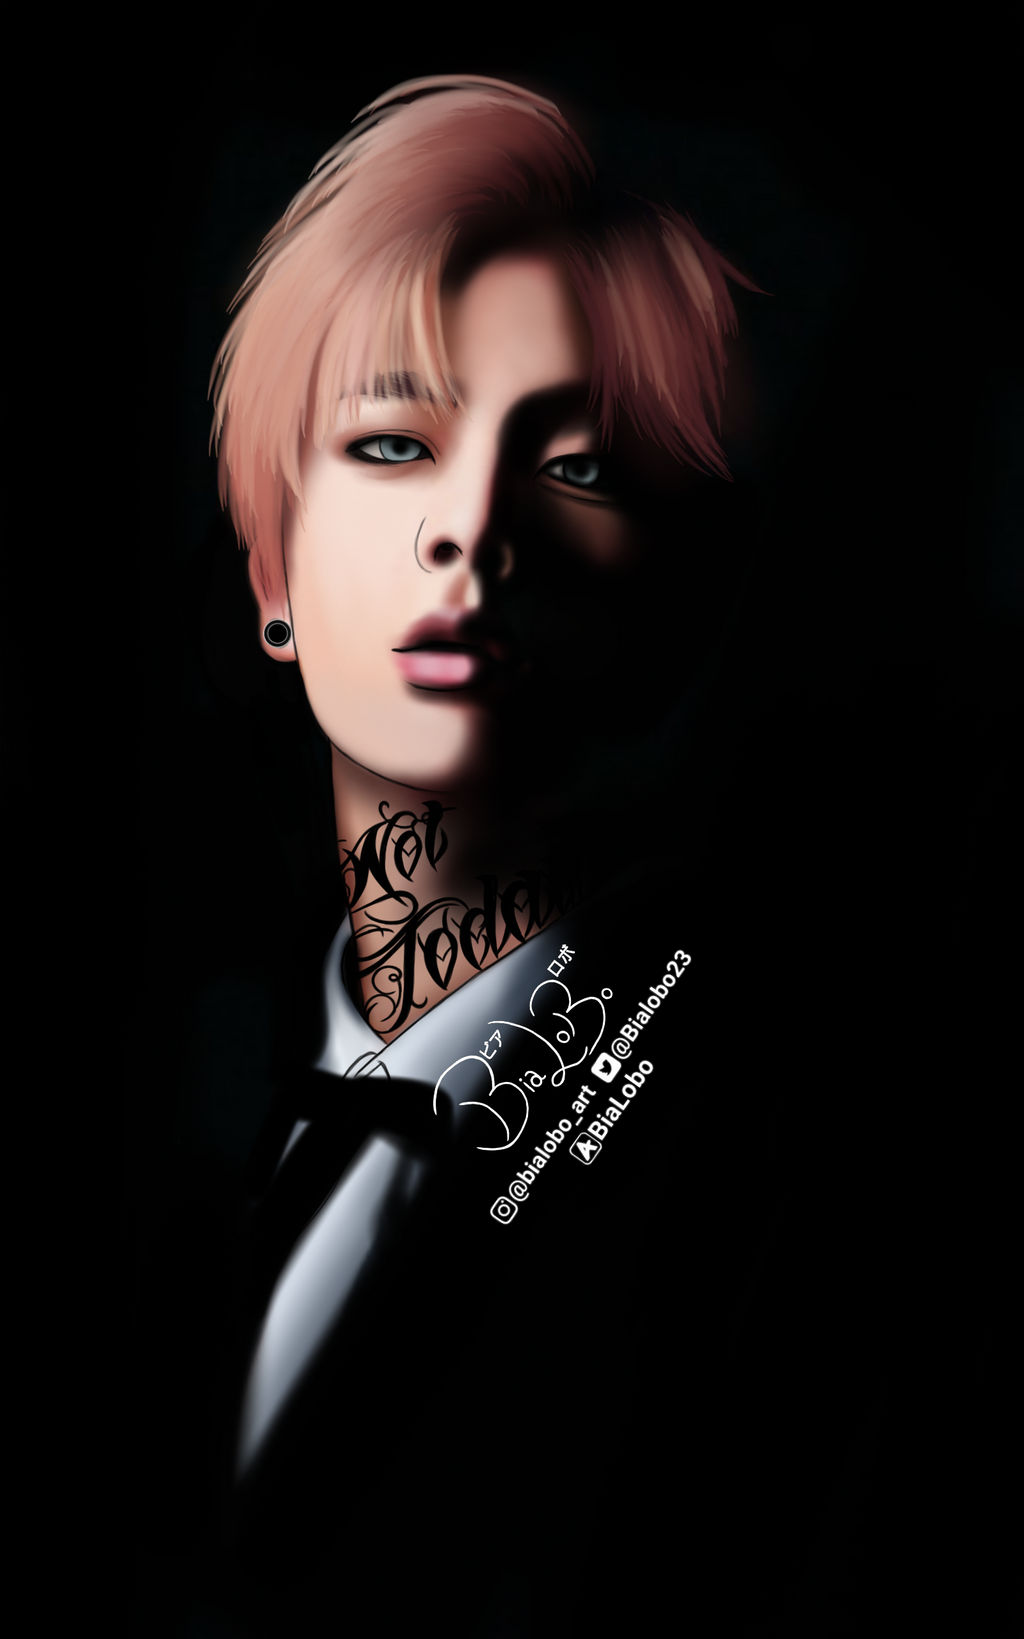 Jin Tattoo Bts Fanart Bybialobo By Bialobo On Deviantart